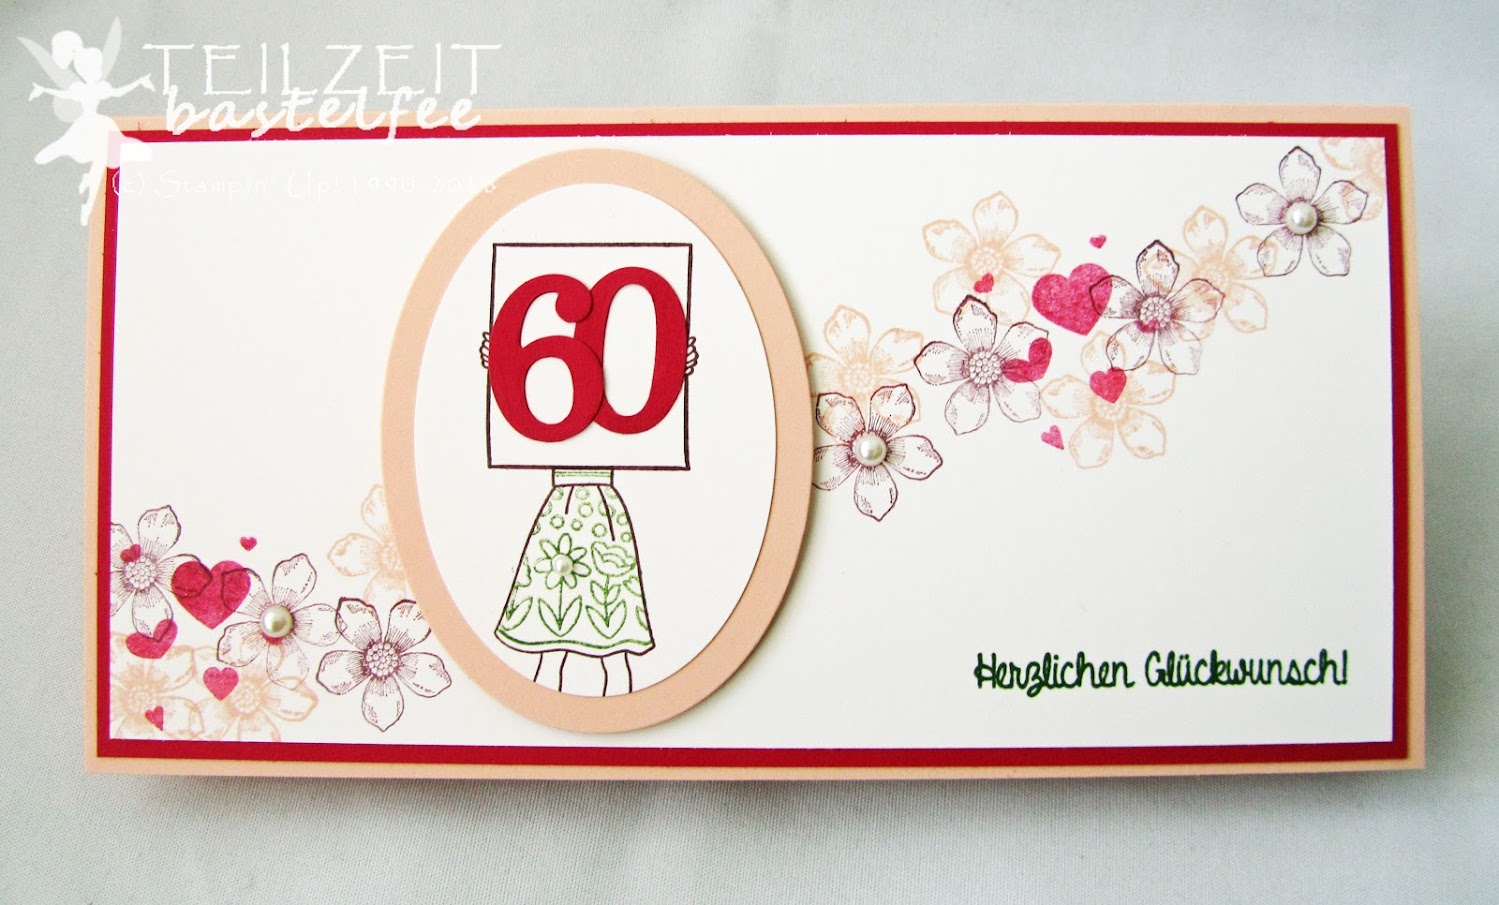 Stampin' Up! - Inkspire_me, Sketch Challenge, Color Challenge, Hand Delivered, Persönlich Überbracht, Geburtstag, Birthday, Petite Petals